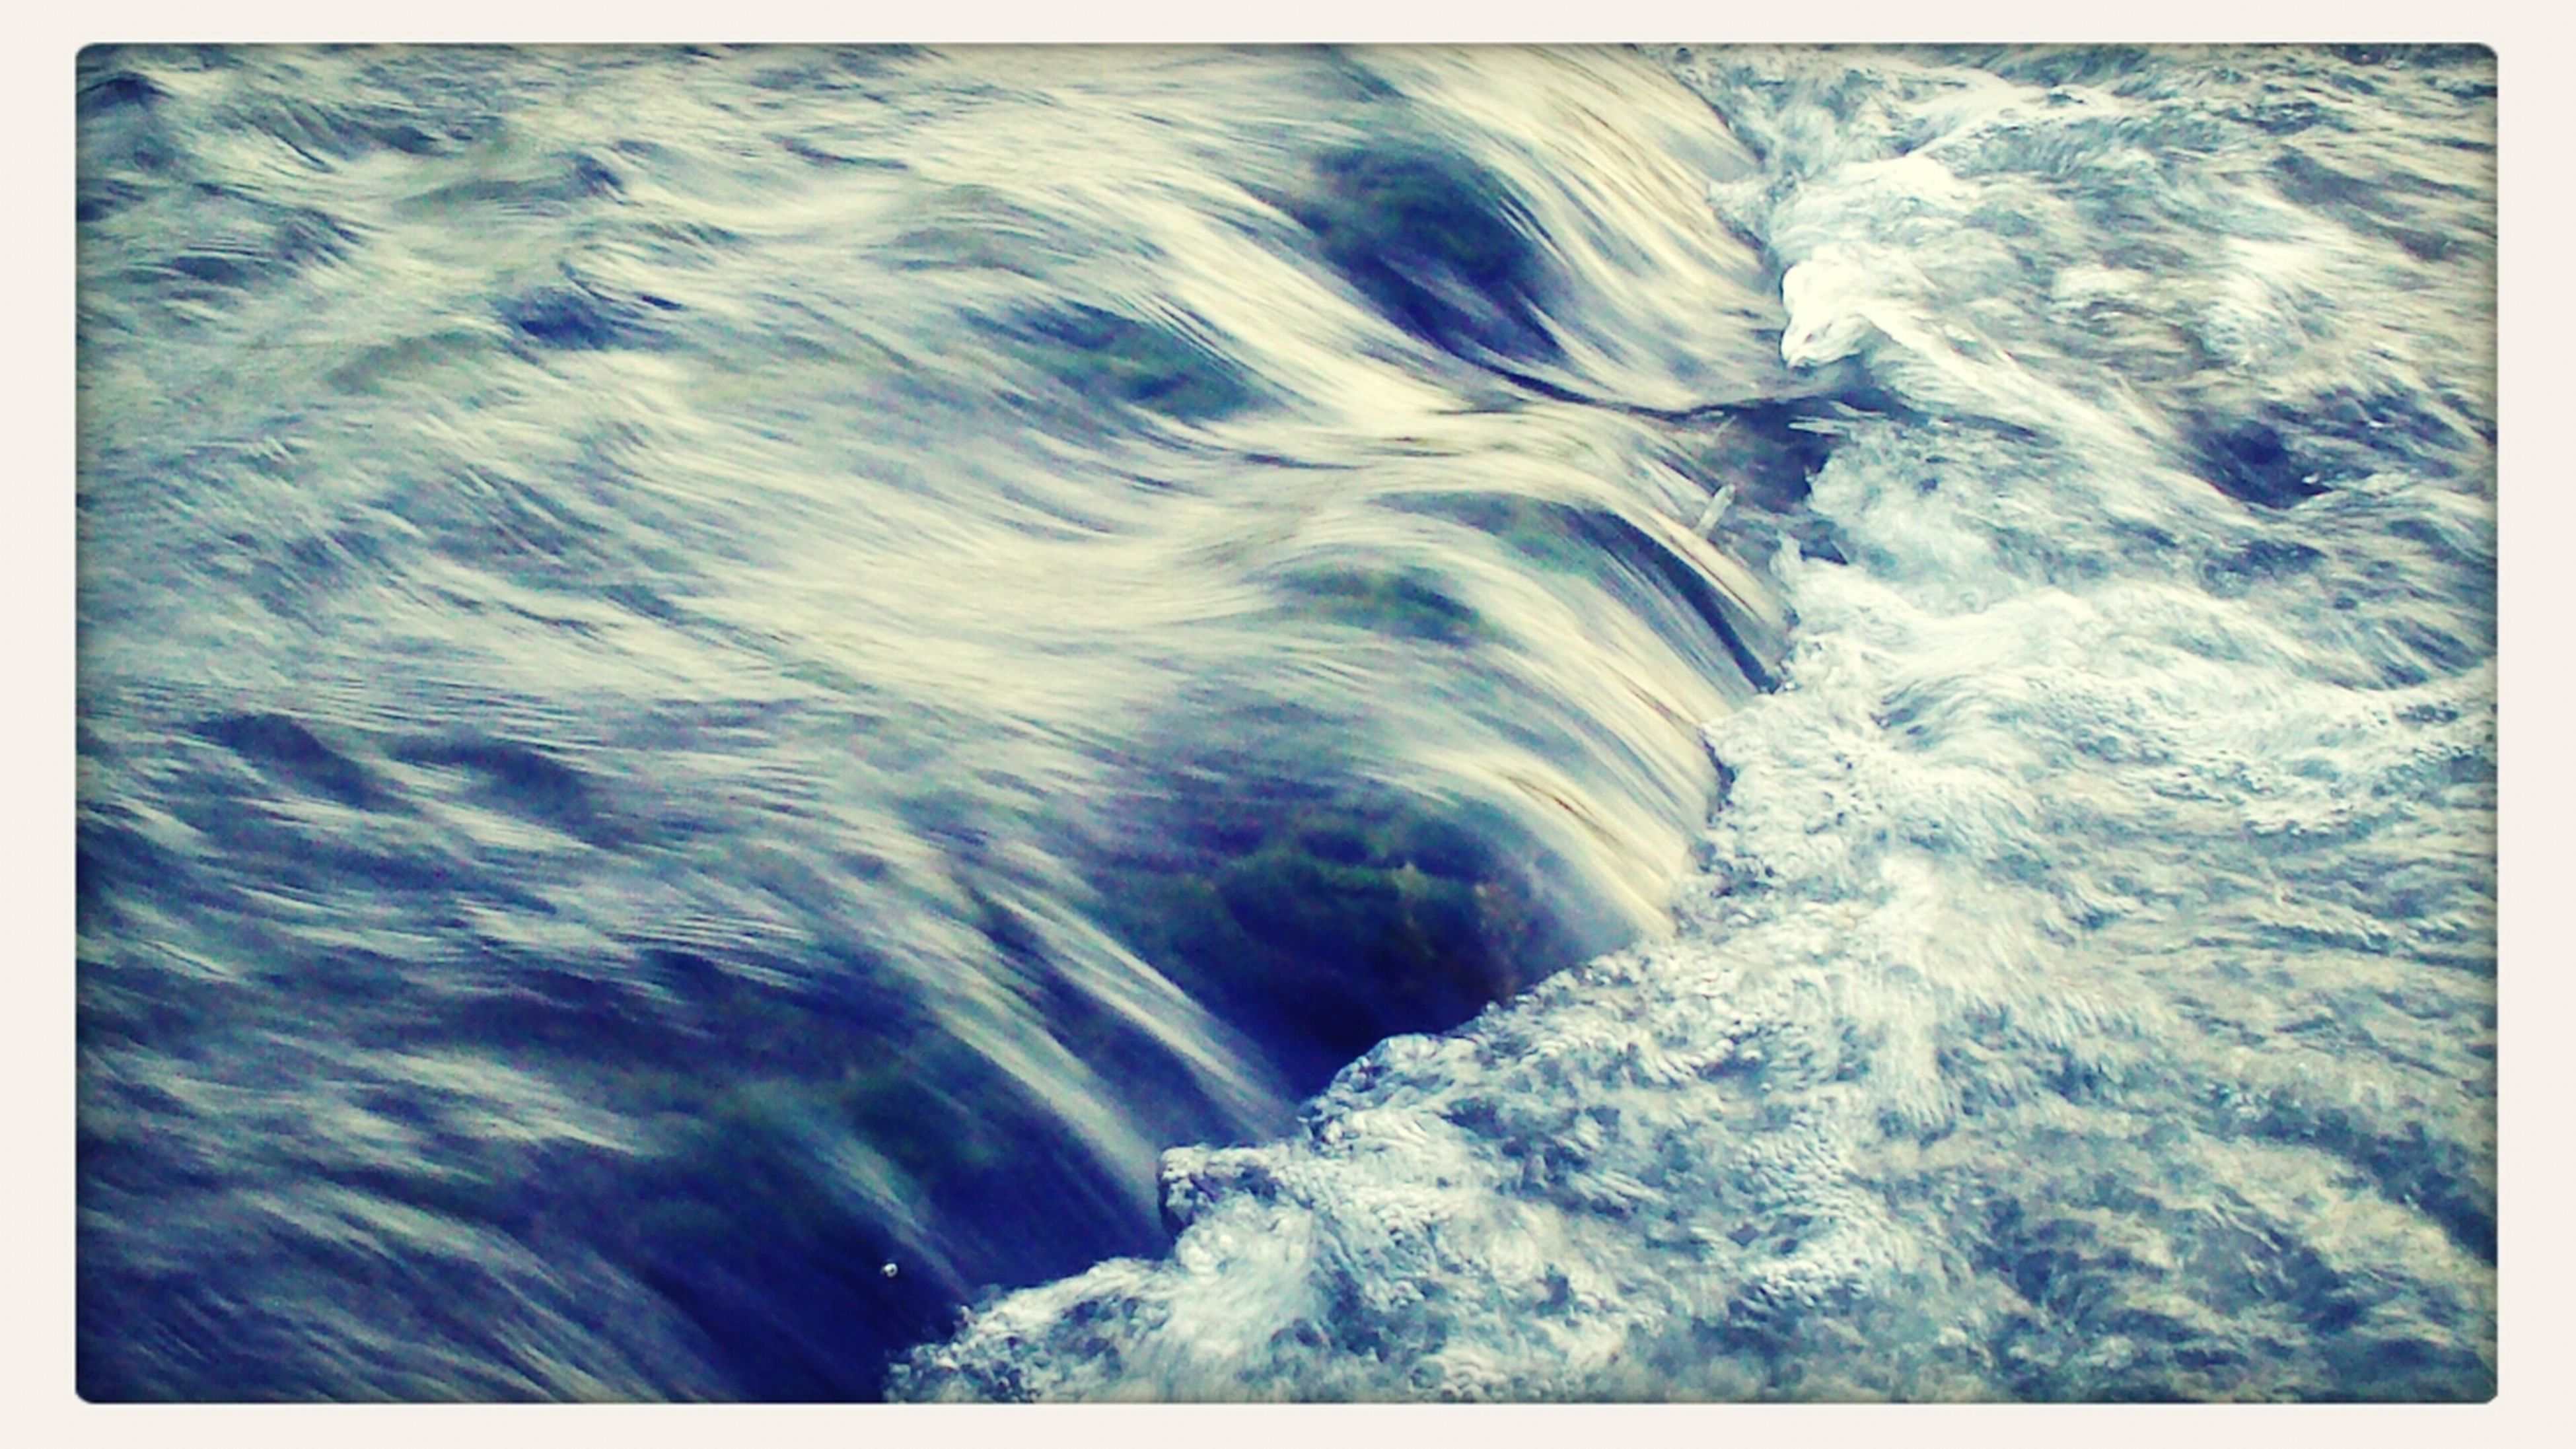 water, motion, waterfront, beauty in nature, nature, scenics, surf, flowing water, high angle view, rippled, power in nature, splashing, transfer print, wave, tranquility, auto post production filter, sea, purity, day, idyllic